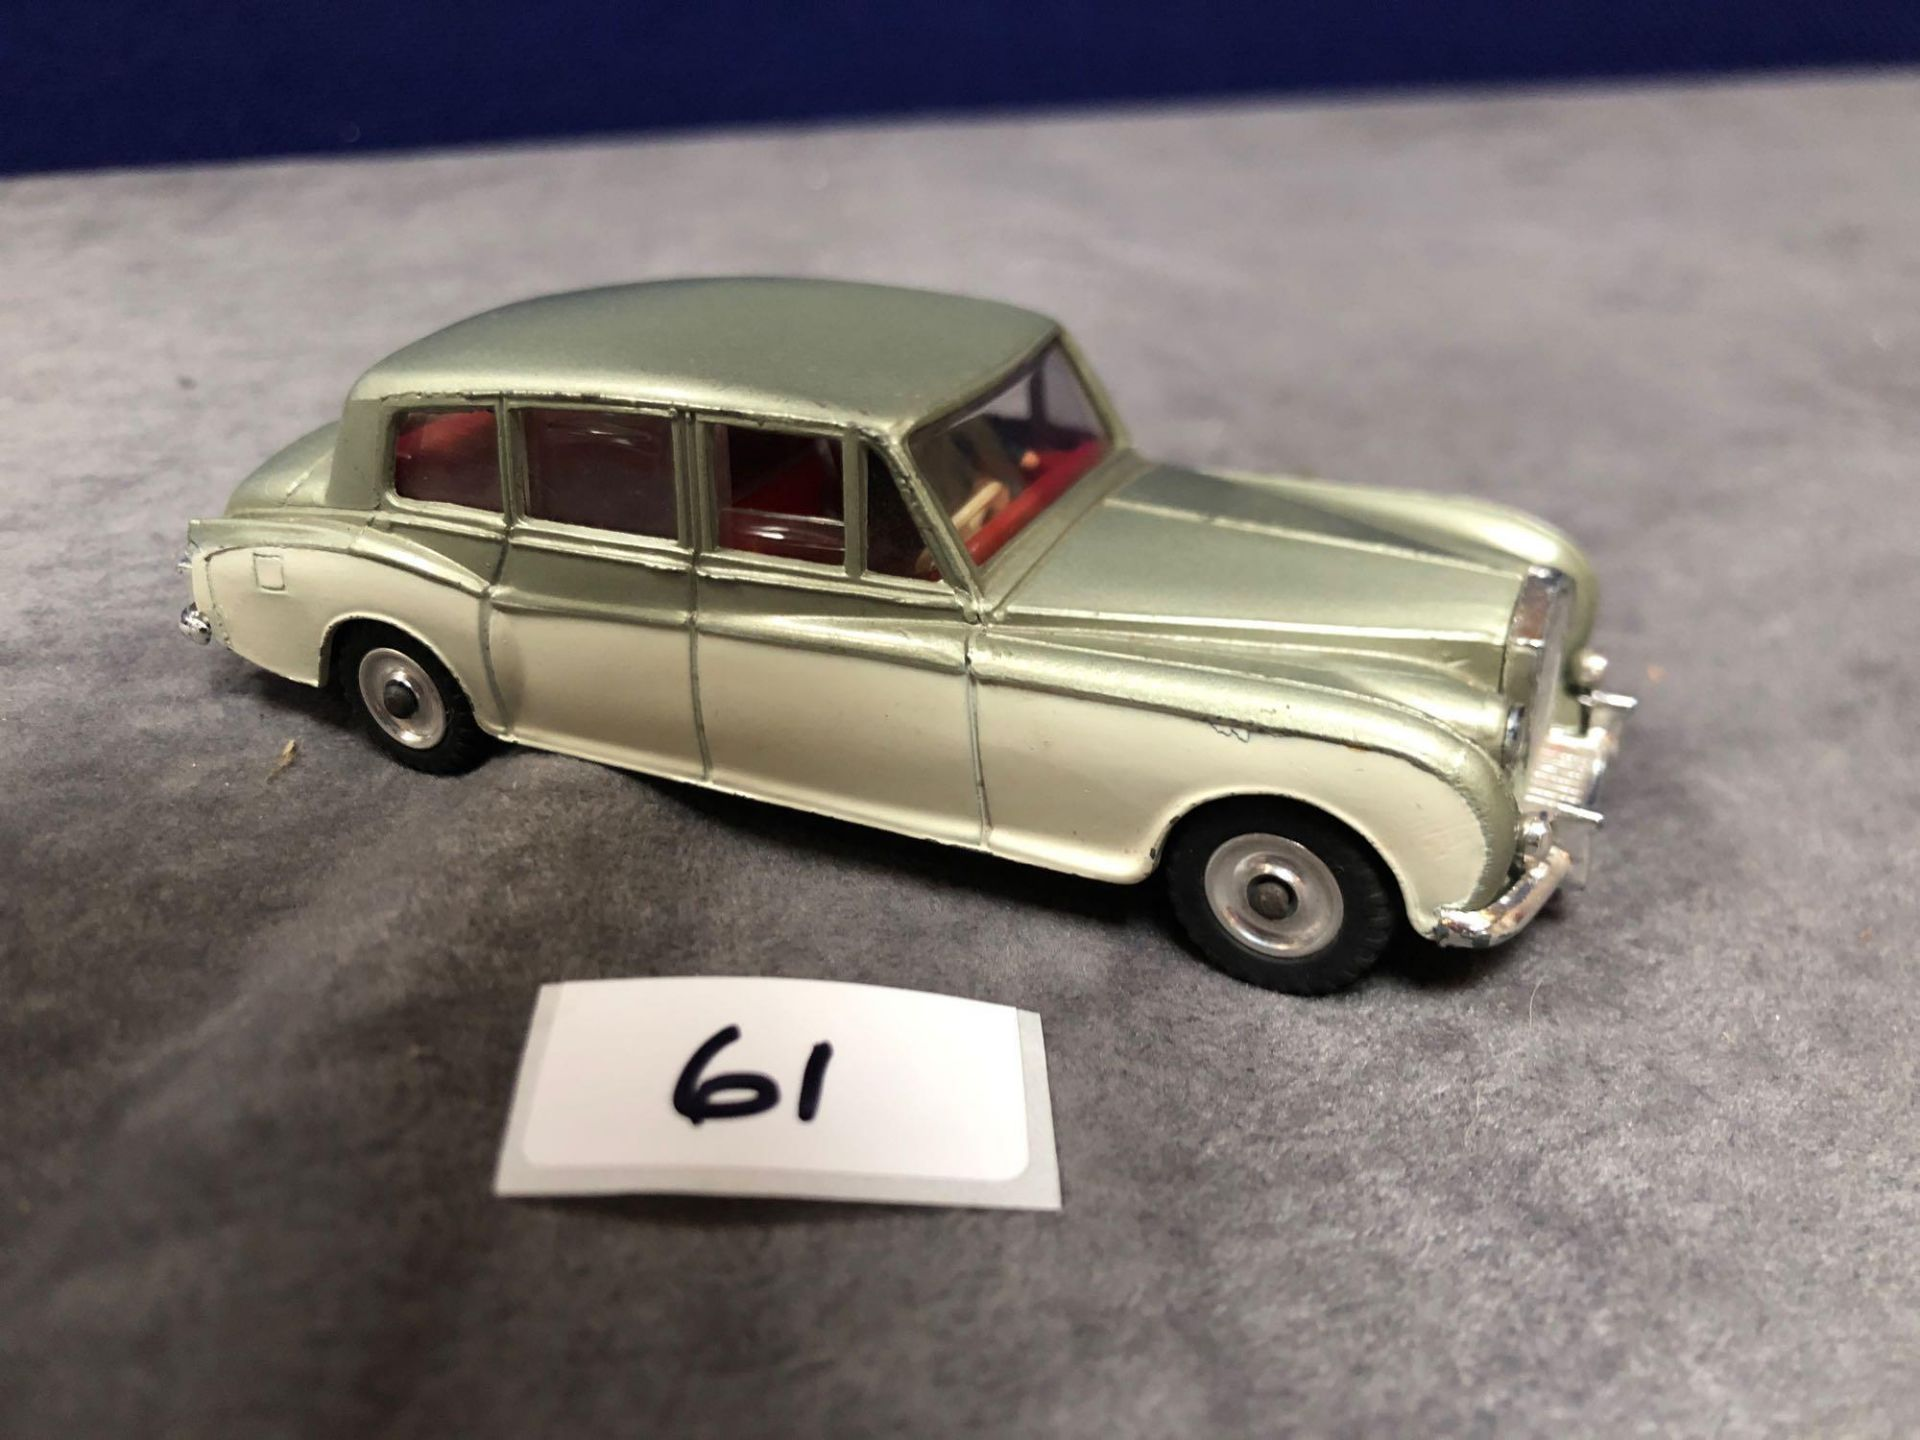 Dinky #198 Rolls Royce Phantom V Green/Cream - Concave Hubs, 1962 - 1969 Unboxed excellent model